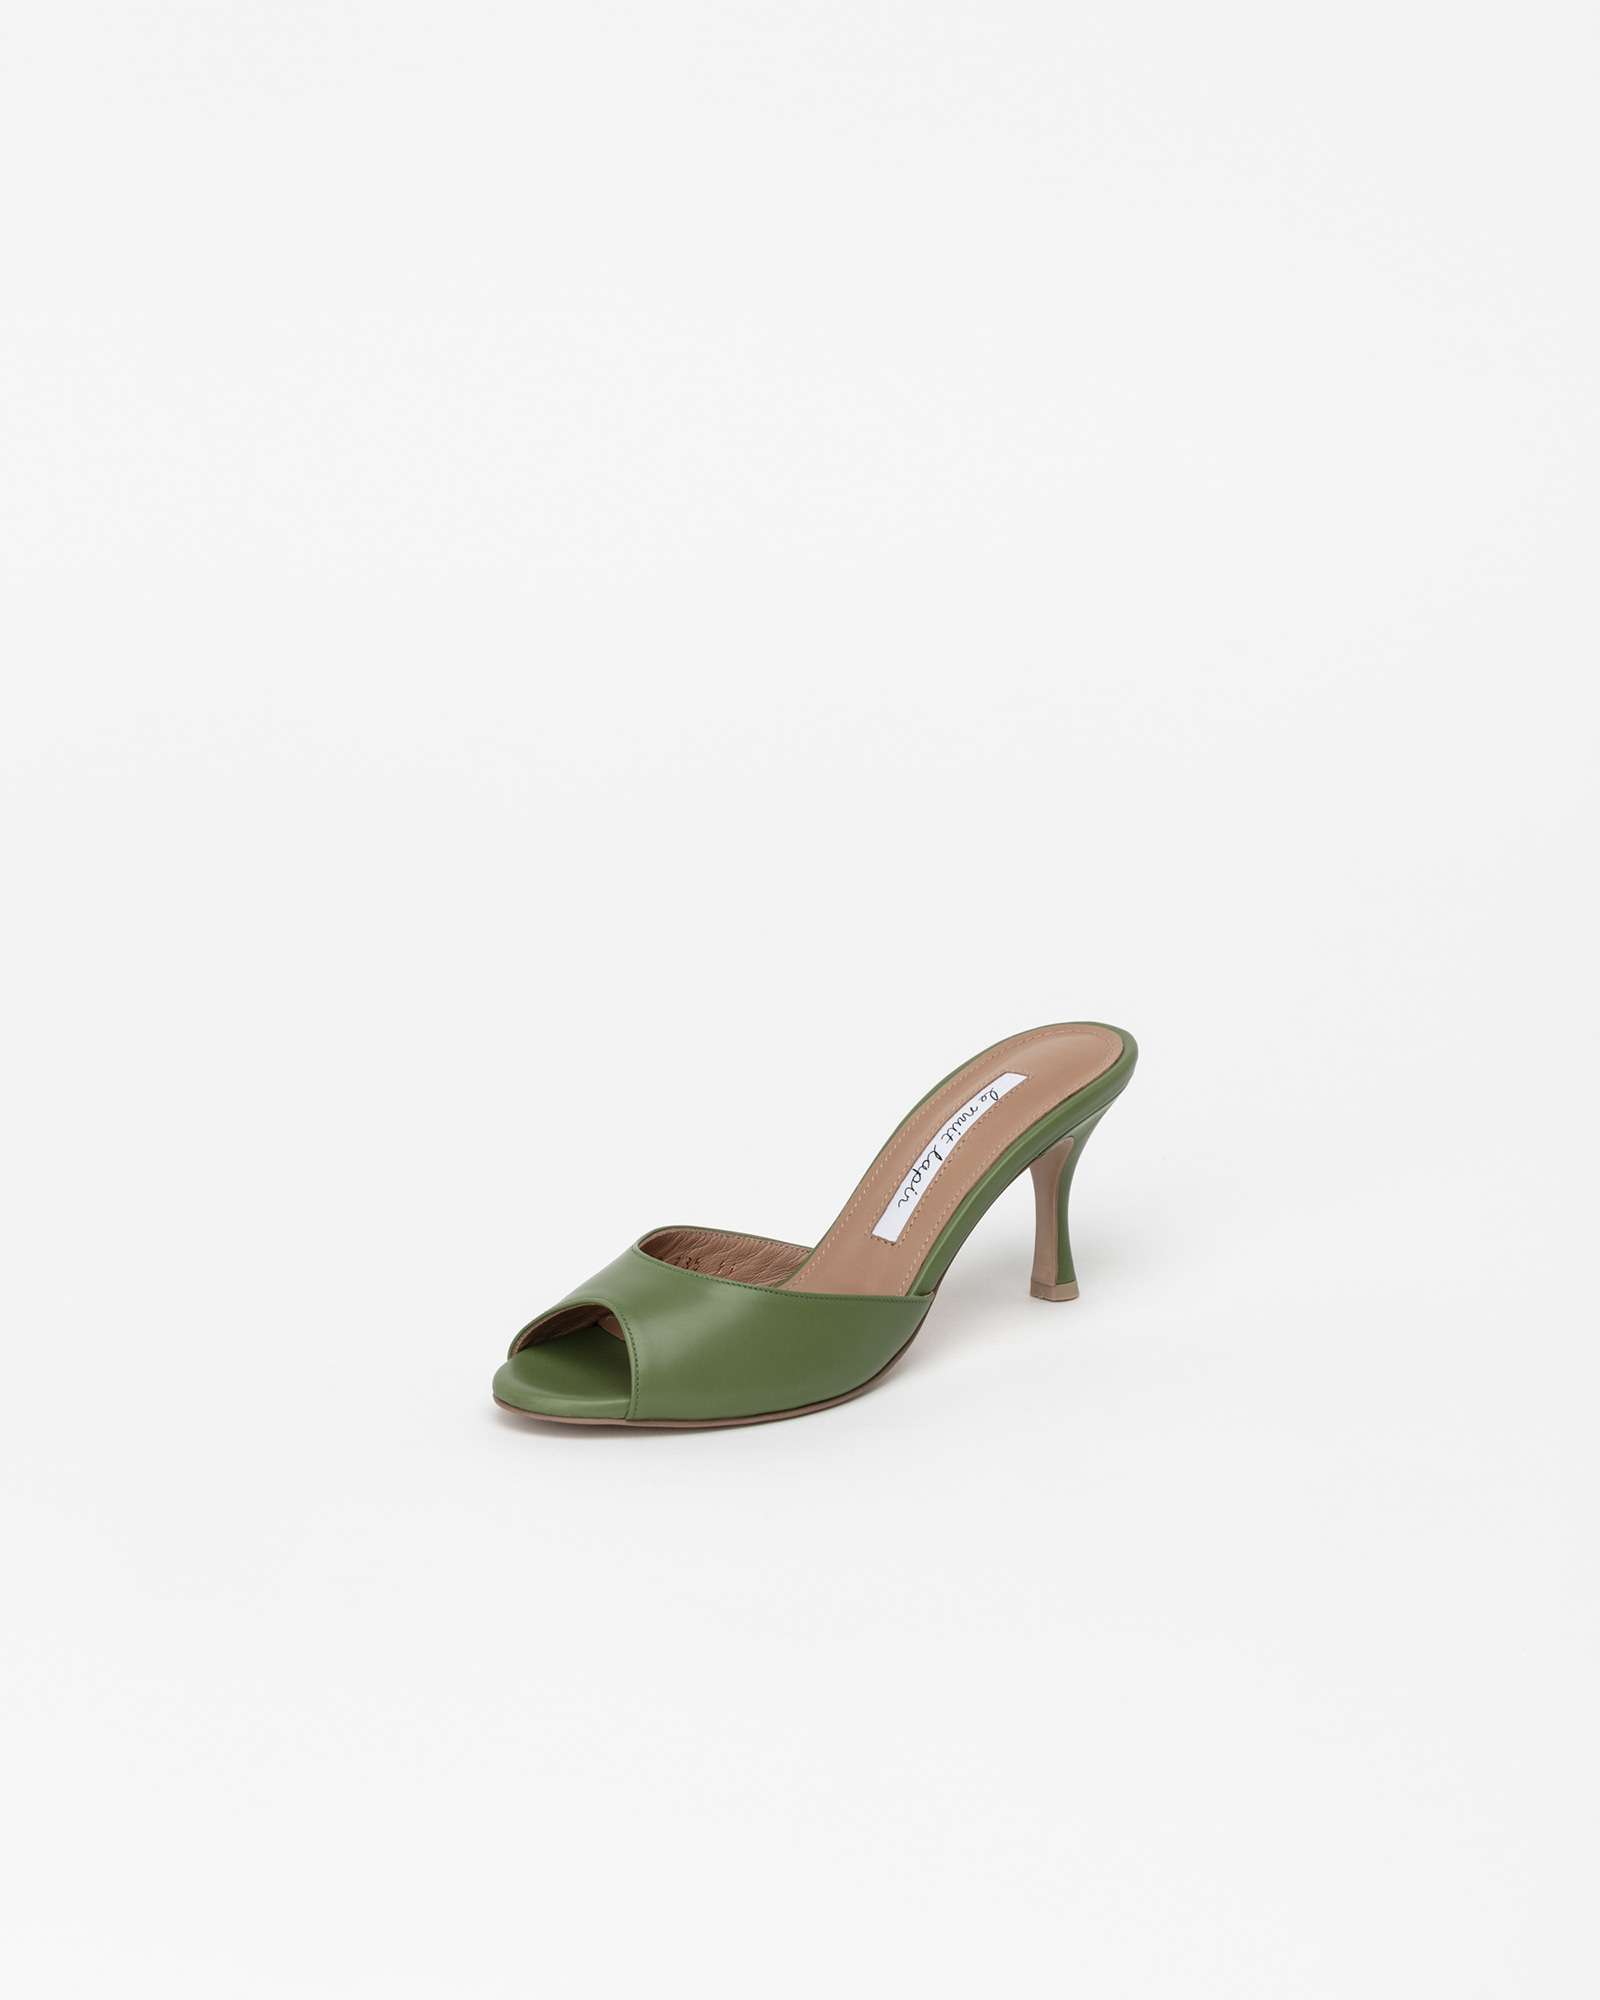 Chartres Mules in Green Baby Calf